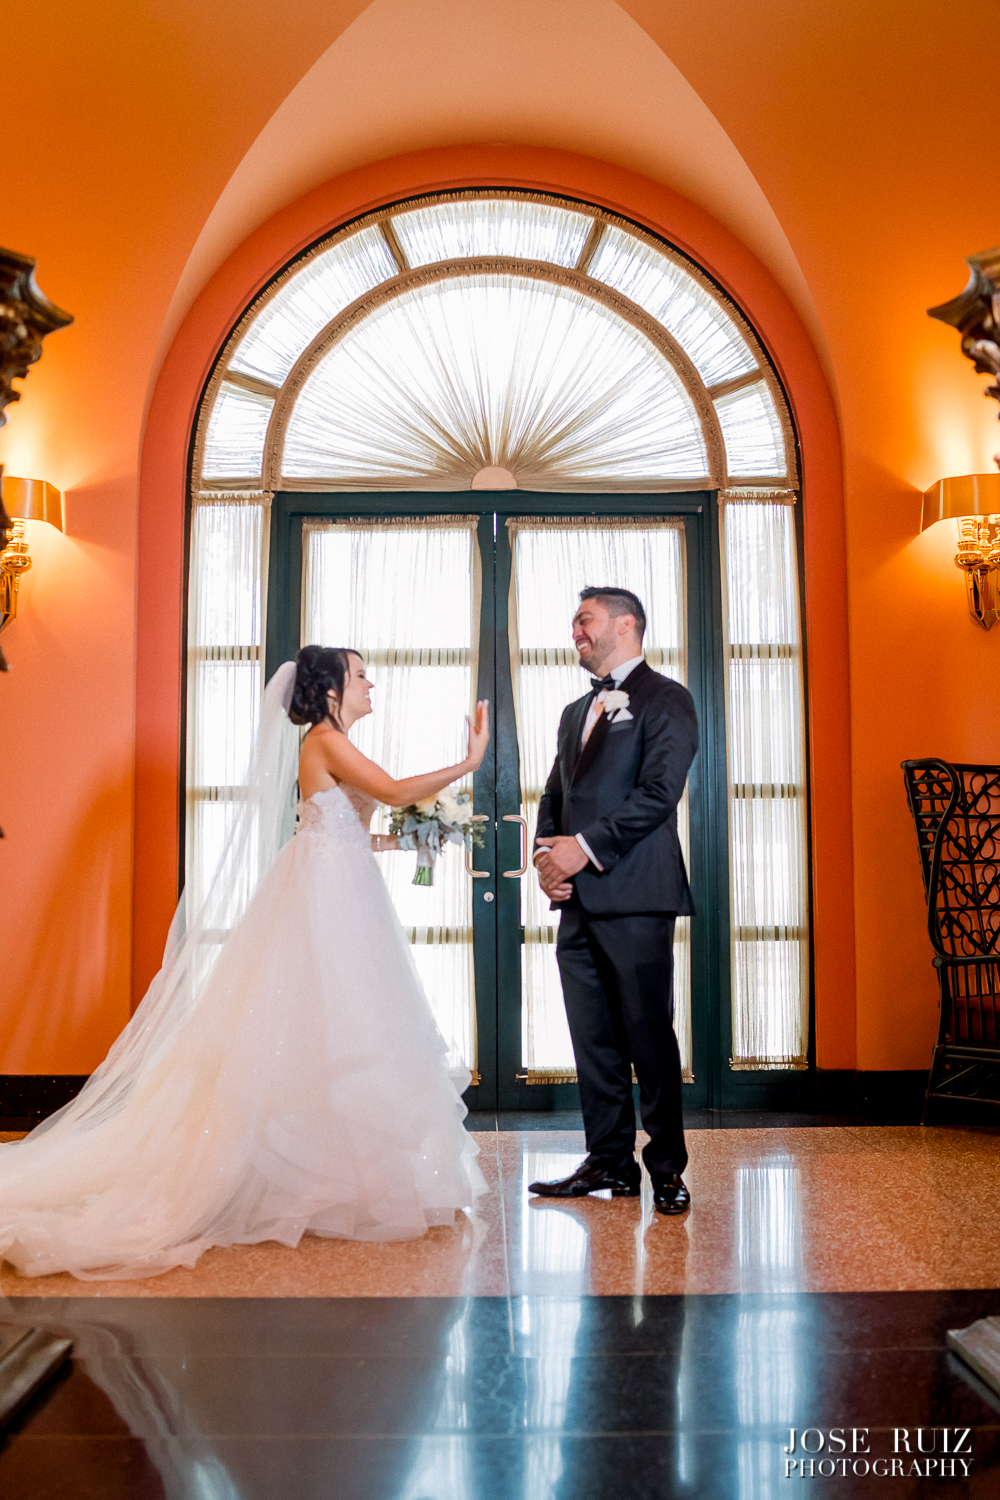 Jose Ruiz Photography- Madalyn & Joel-0029.jpg